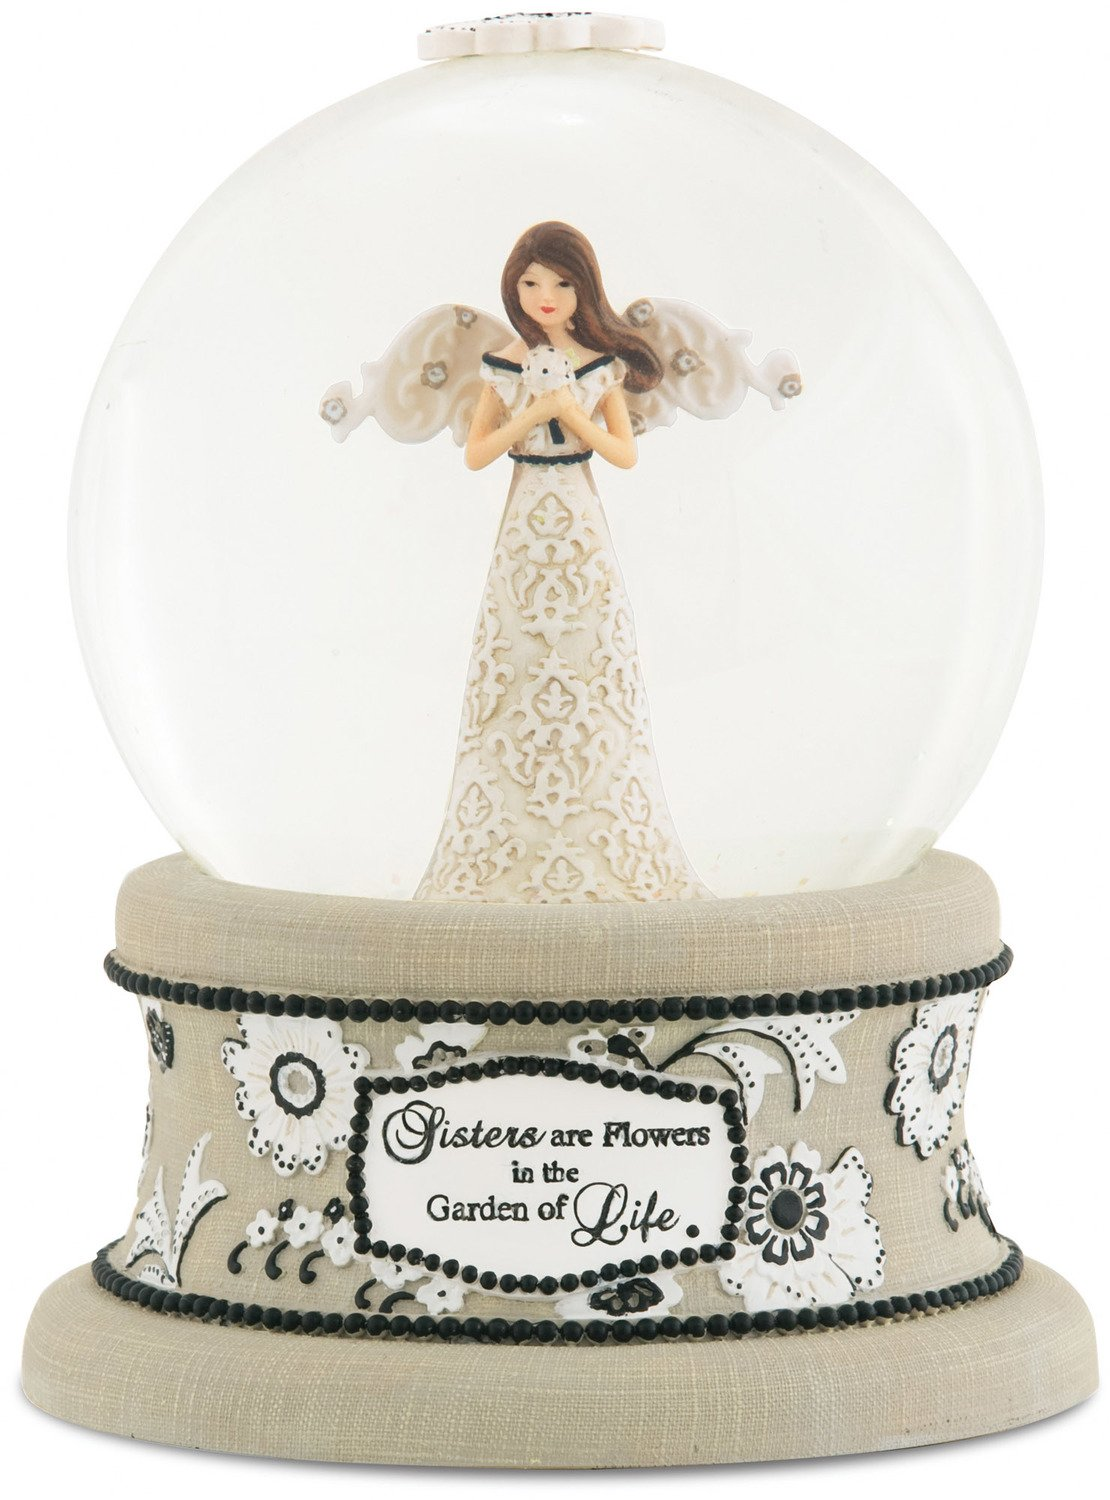 Pavilion Gift Company Modeles 88067 100mm Musical Water Globe with Angel Figurine, Sister, 6-Inch